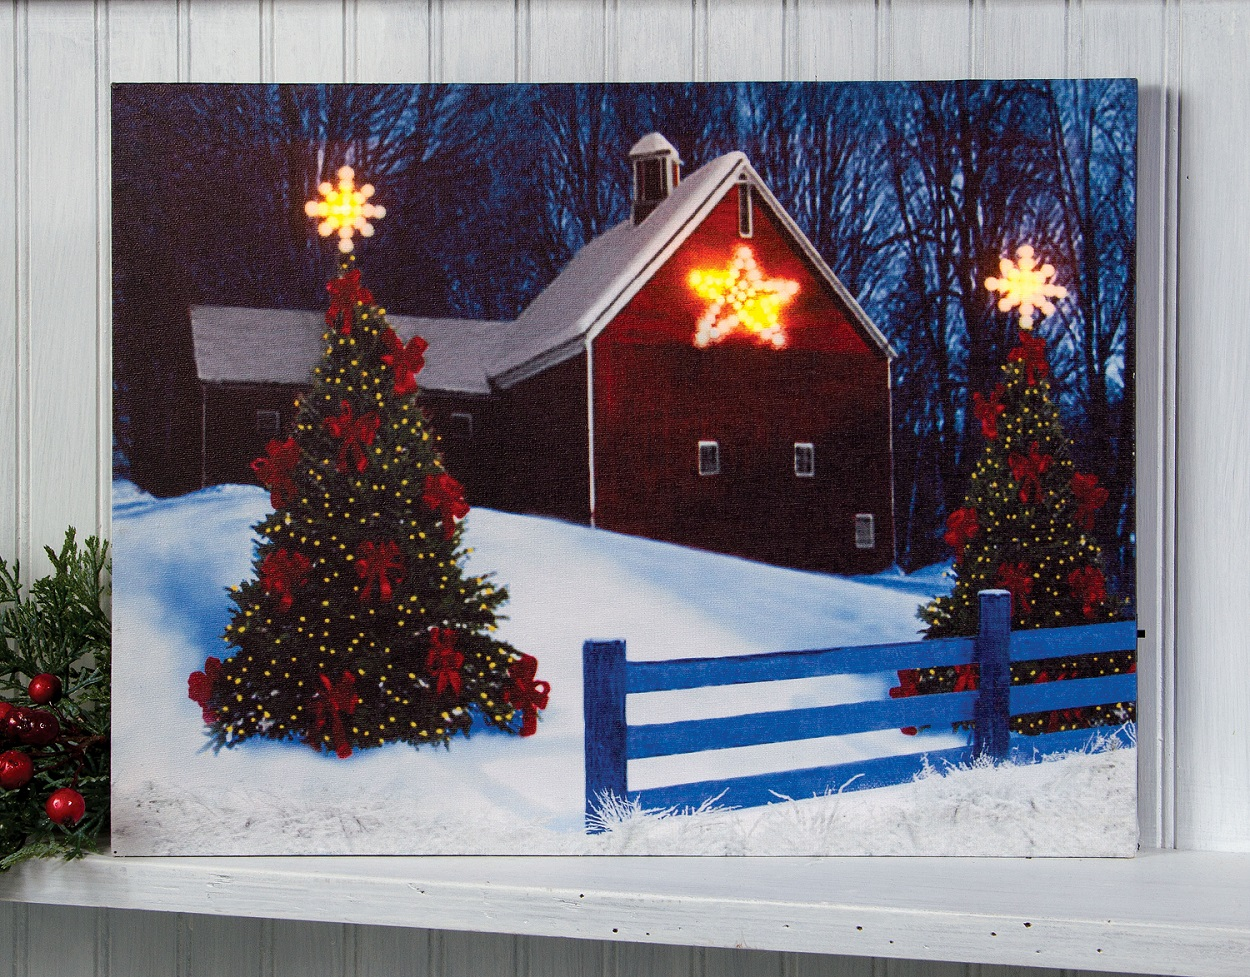 Christmas Barn Lighted Picture | Shelley B Home and Holiday.com